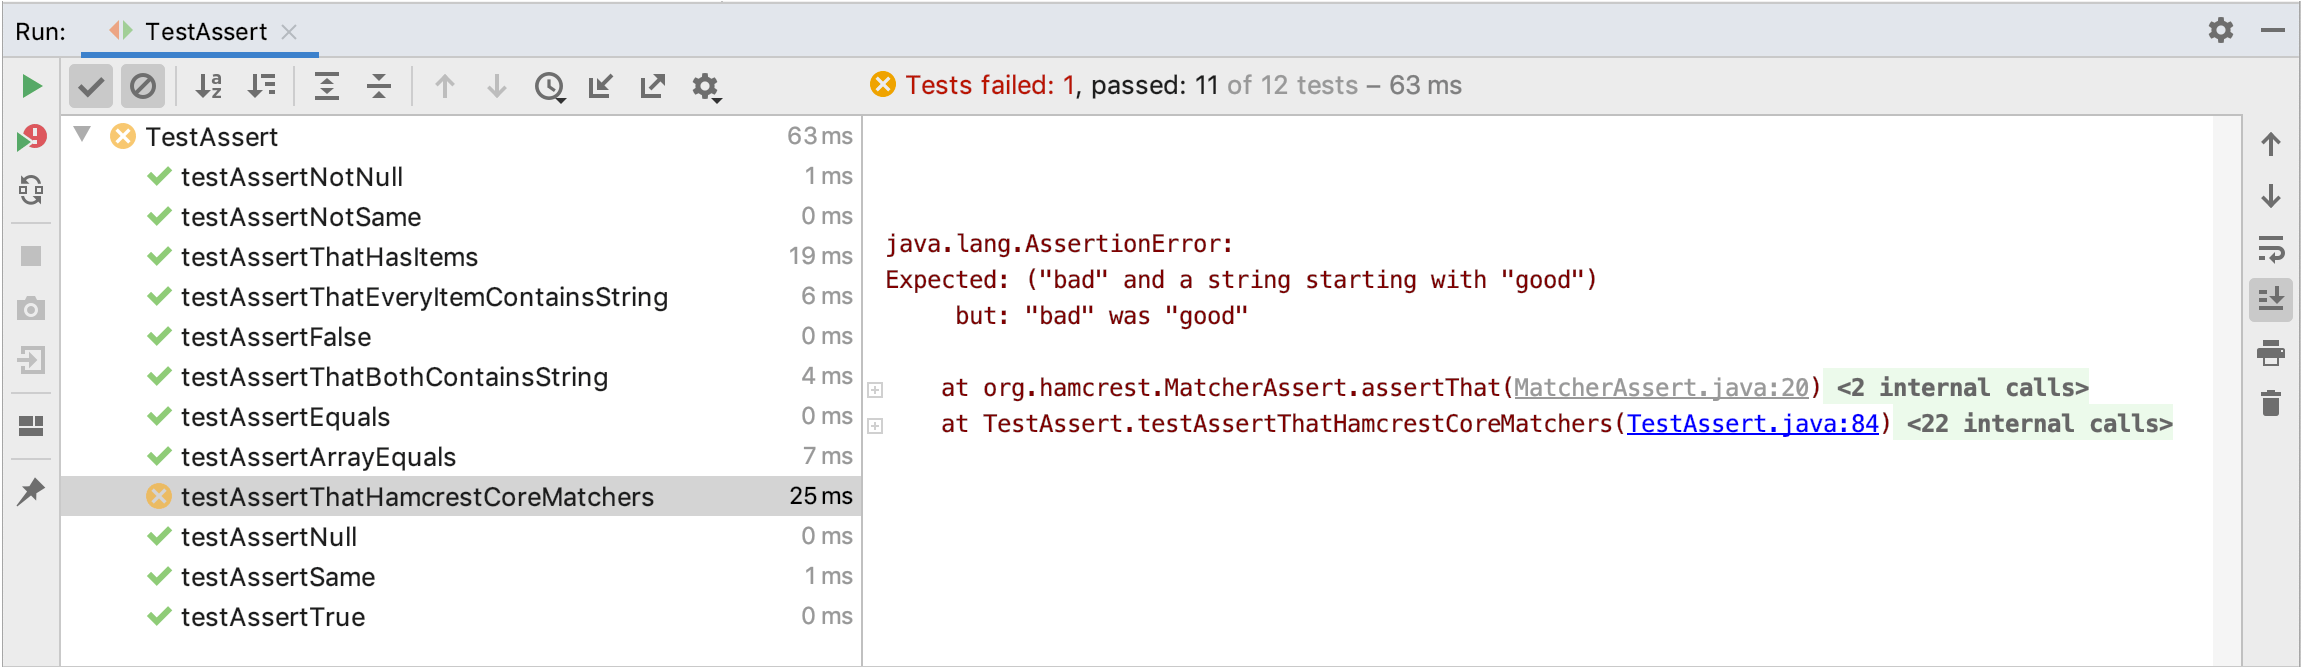 Monitoring and Managing Tests - Help | IntelliJ IDEA